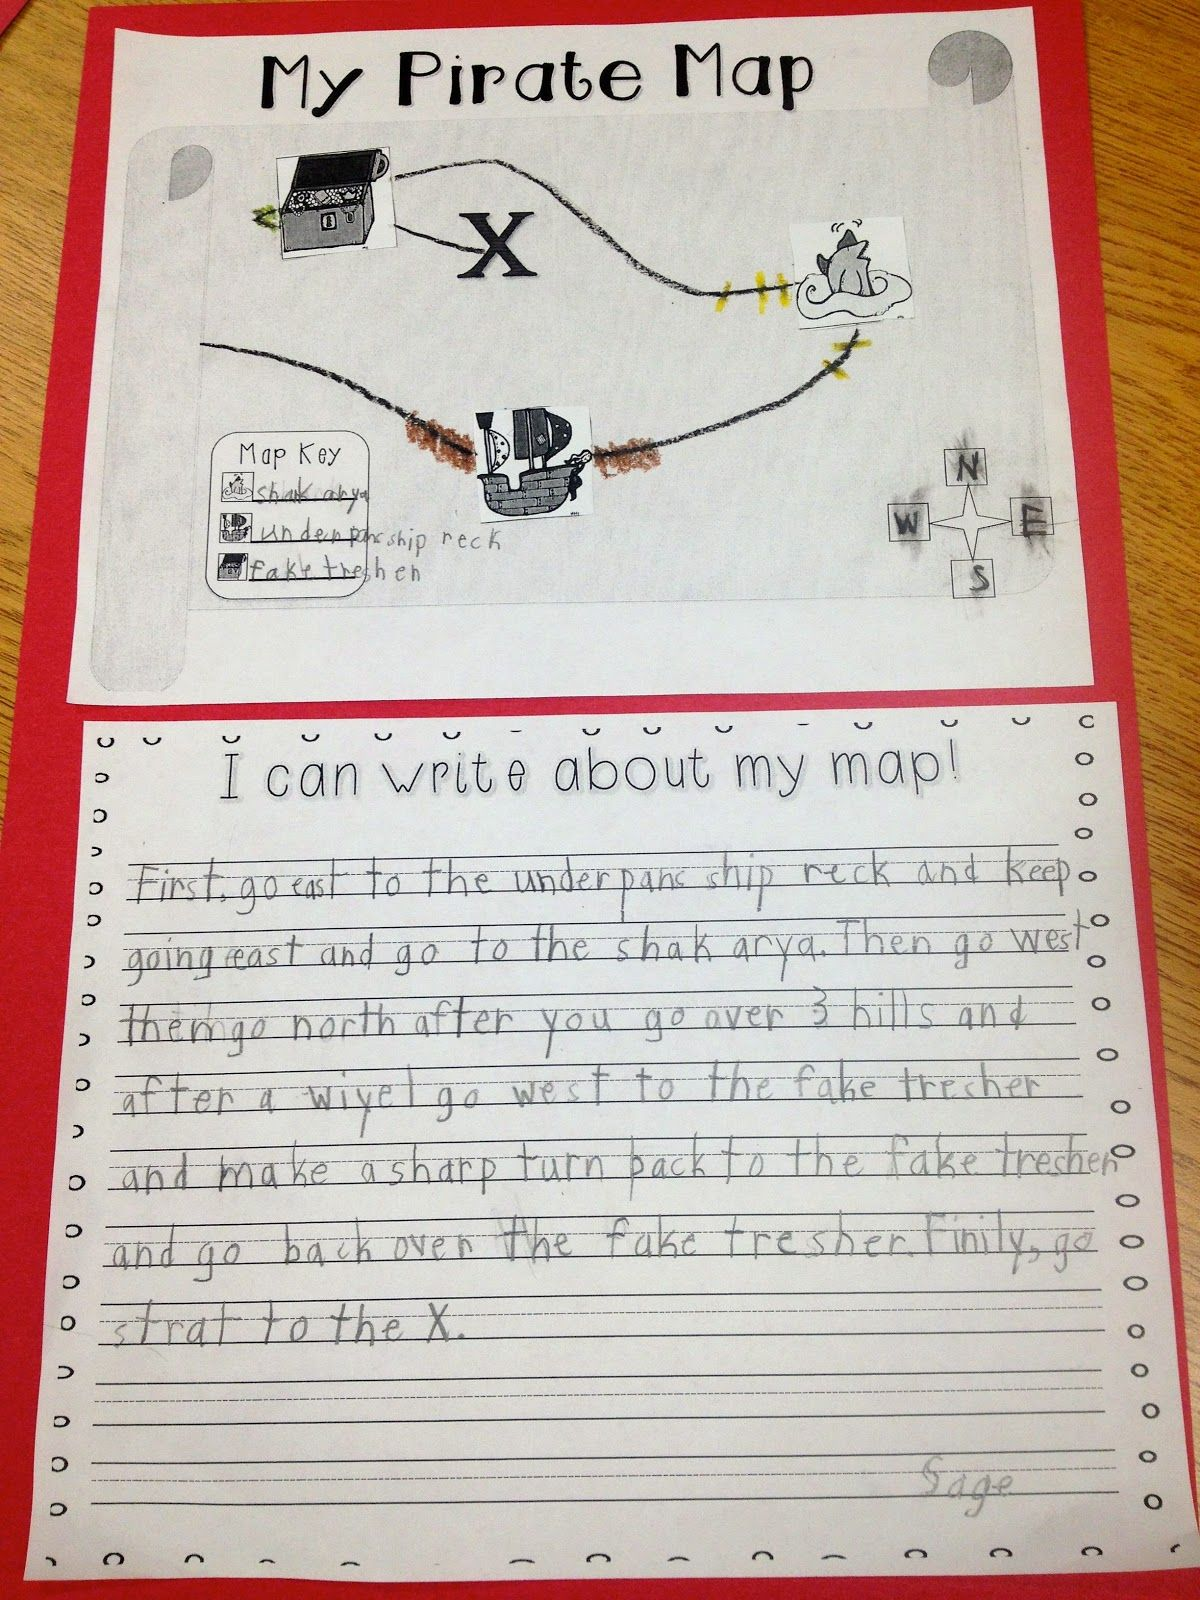 Procedural Writing Made Fun Try Actually Searching For The Treasure